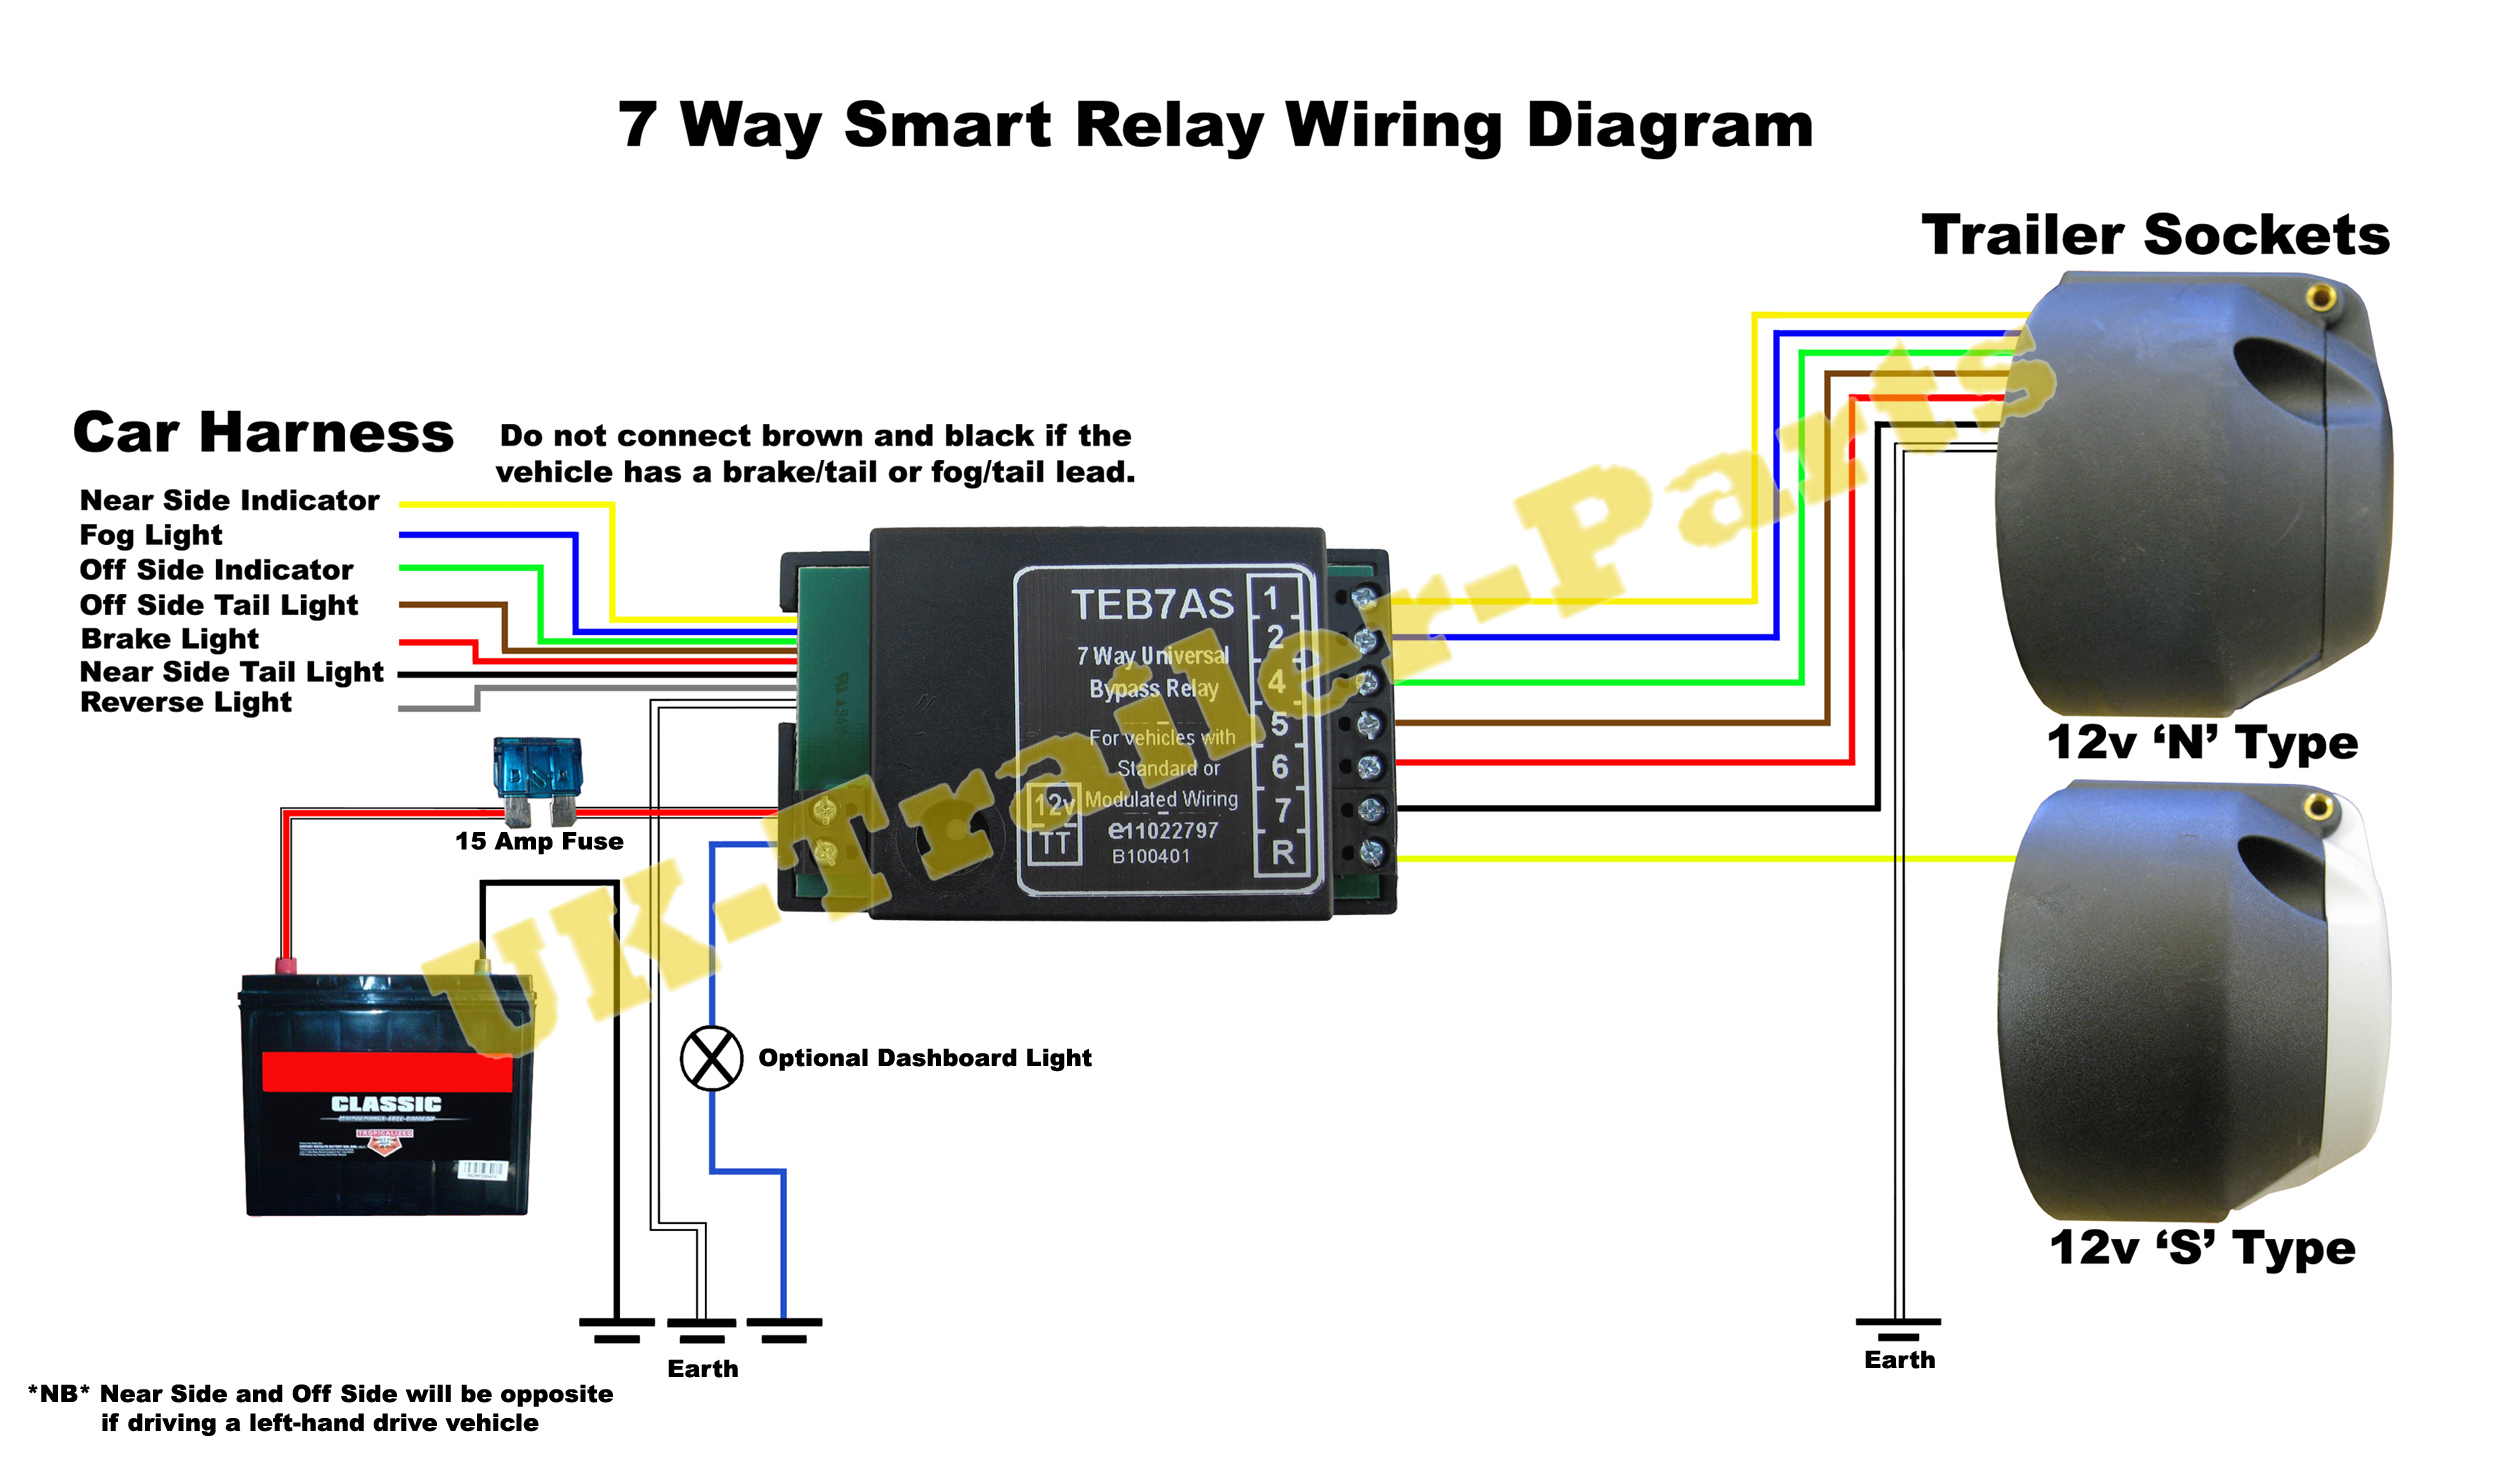 7 way universal bypass relay wiring diagram uk trailer parts vauxhall astra  2003 wiring diagram pdf